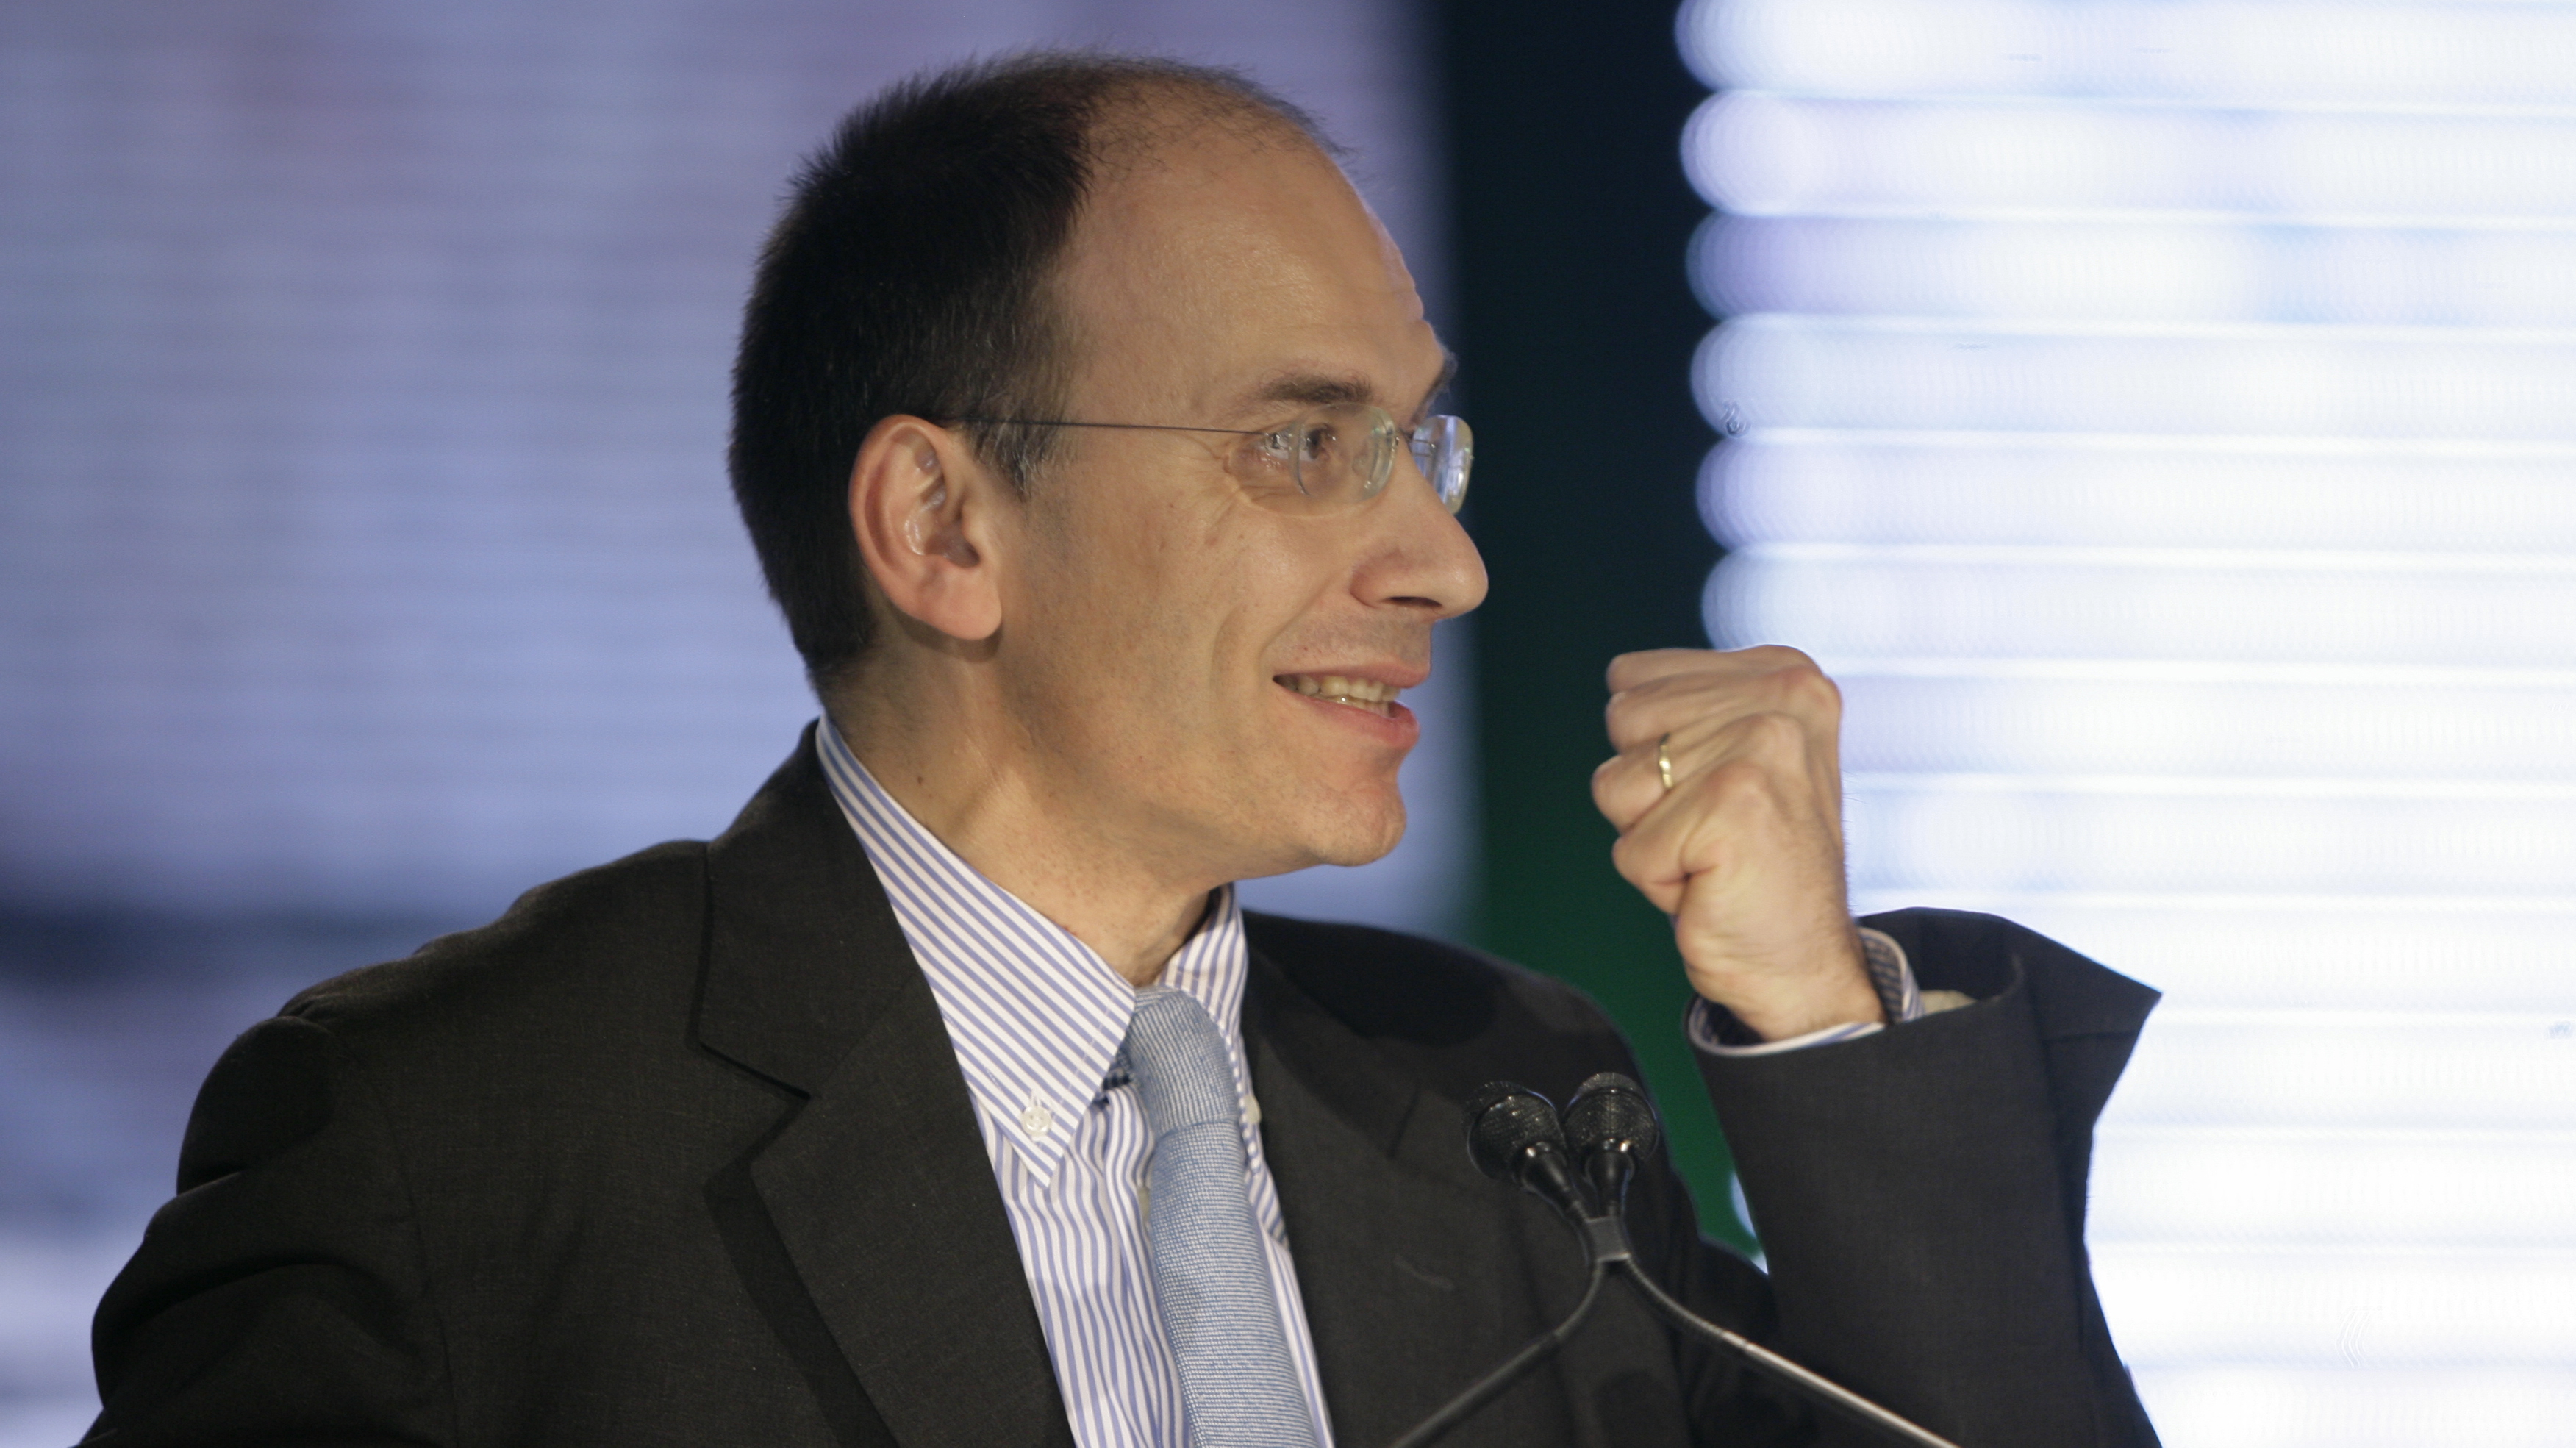 Enrico Letta during the first PD (Democtratic Party) meeting in Milan, Italy, Saturday, Oct.27,2007. (AP Photo/Luca Bruno)